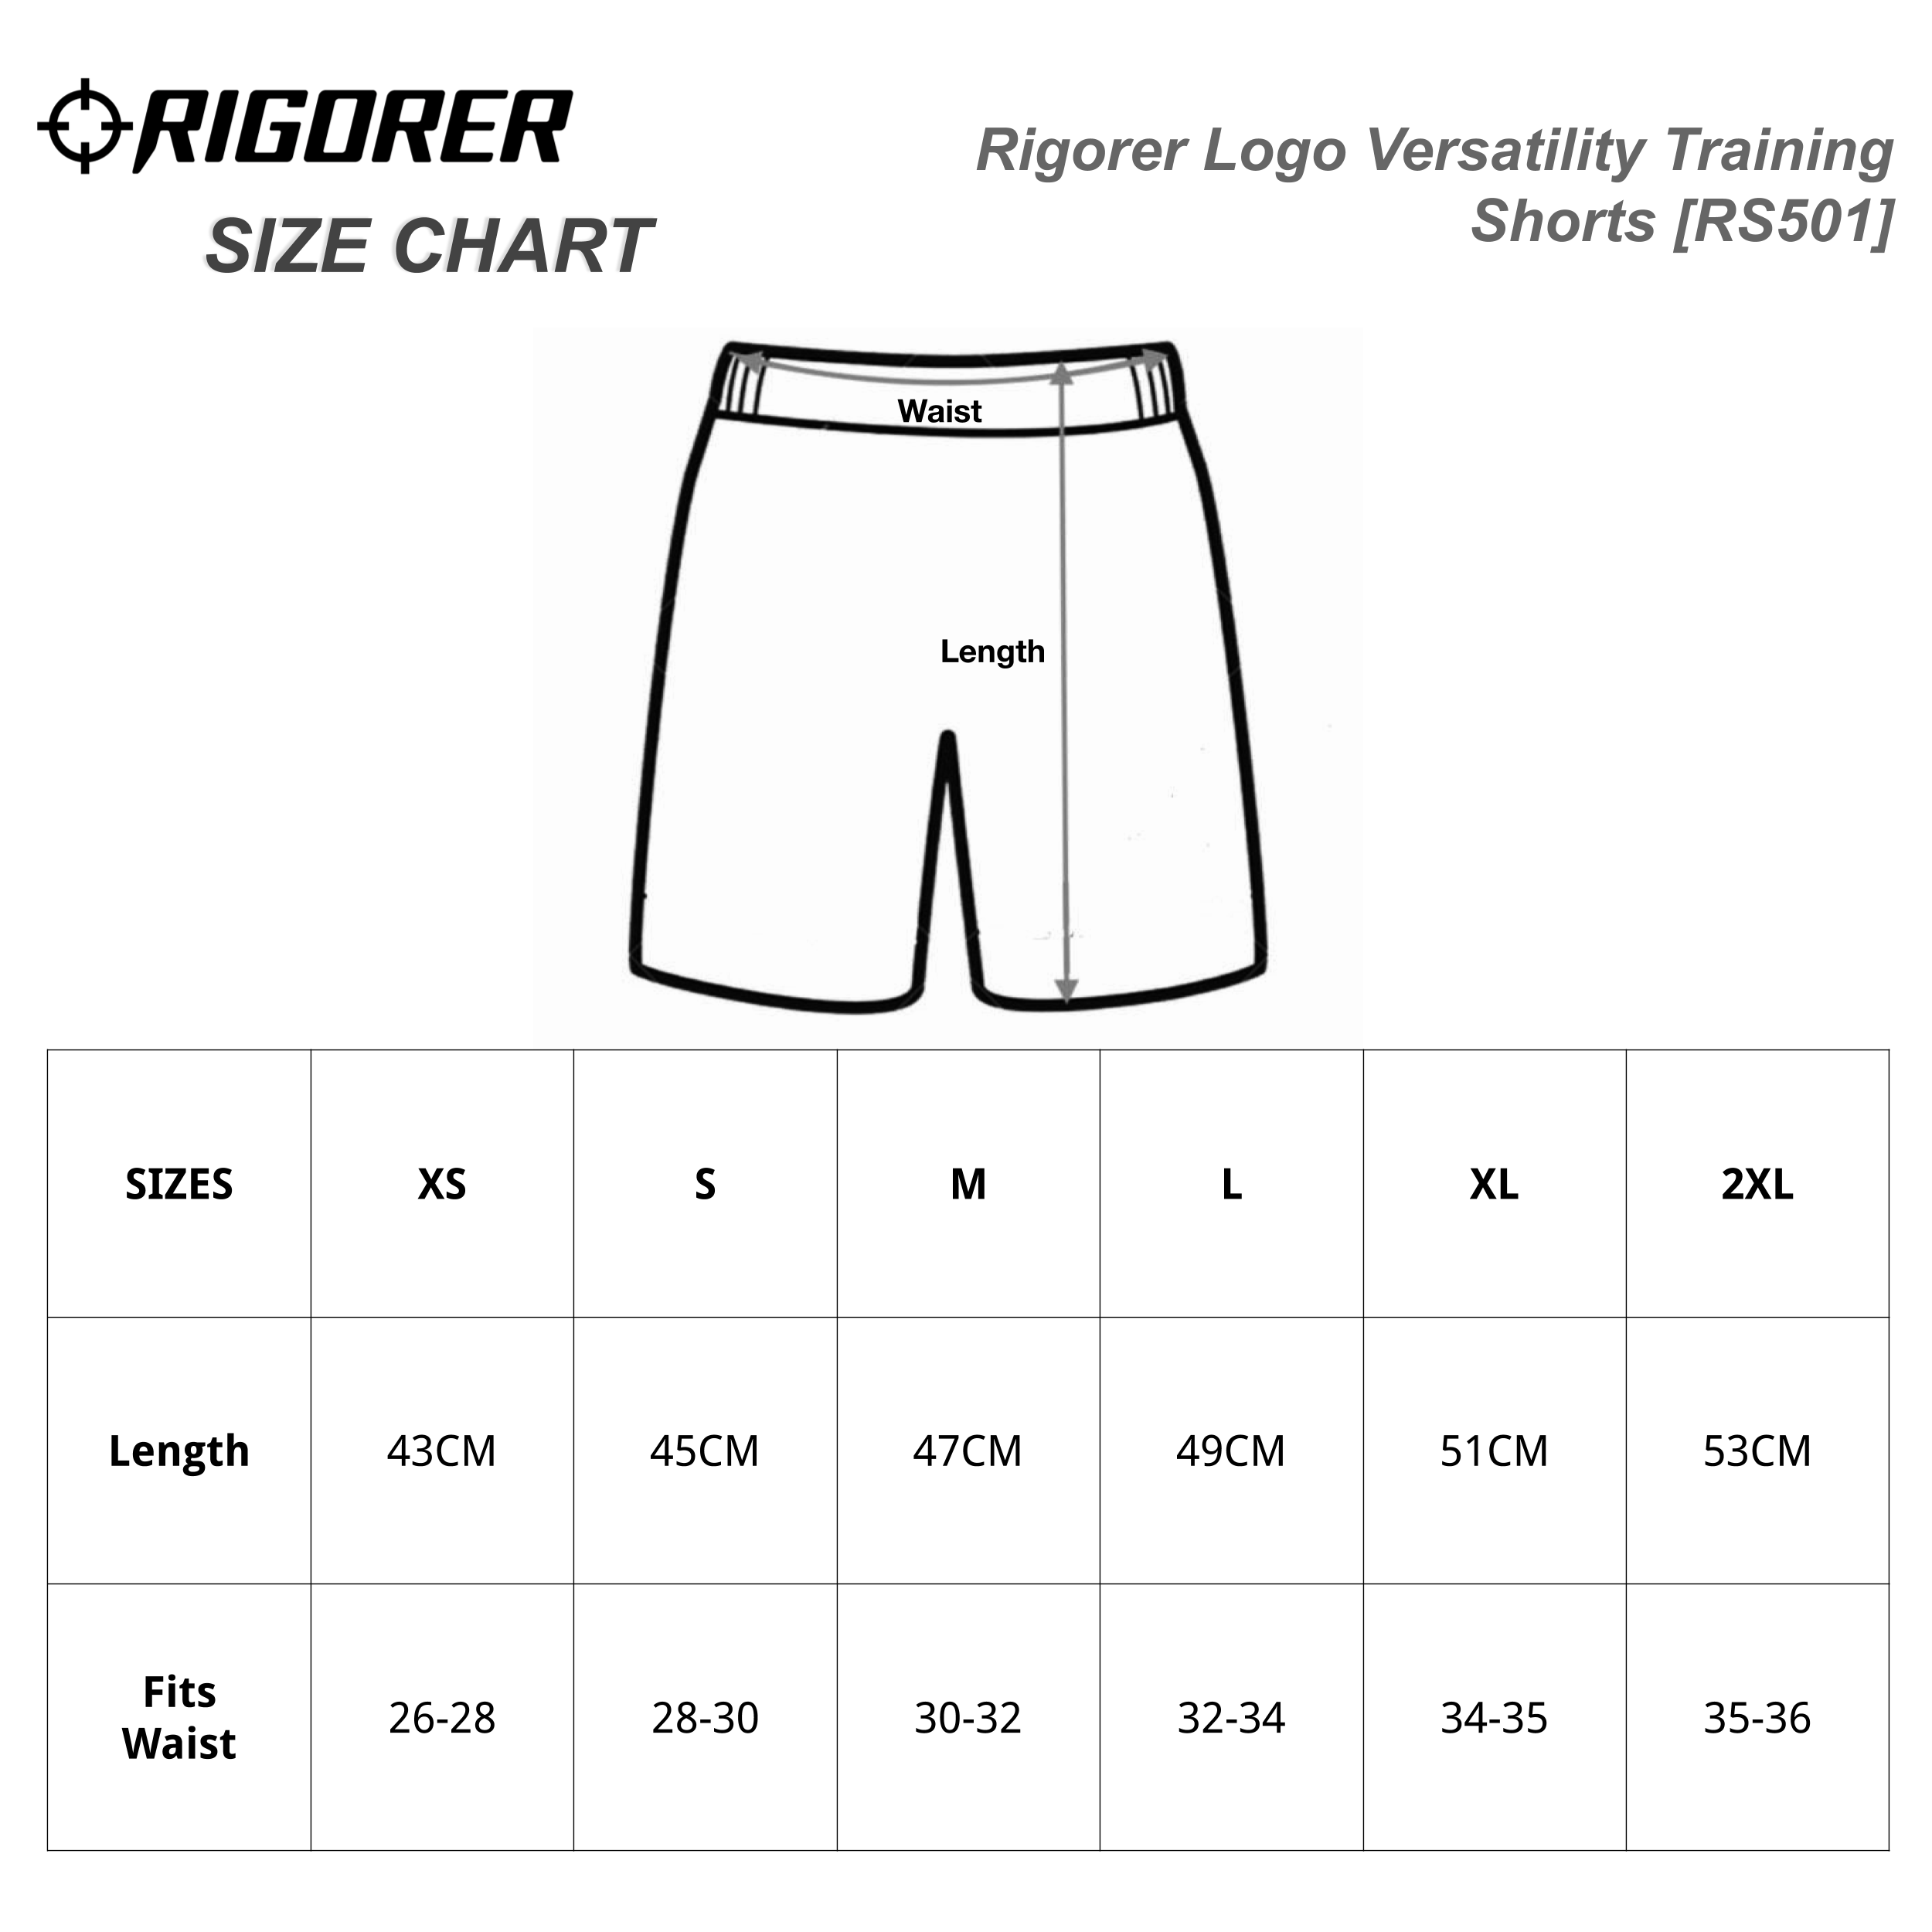 Rigorer Logo Versatility Training Shorts [RS501] Sizing Chart